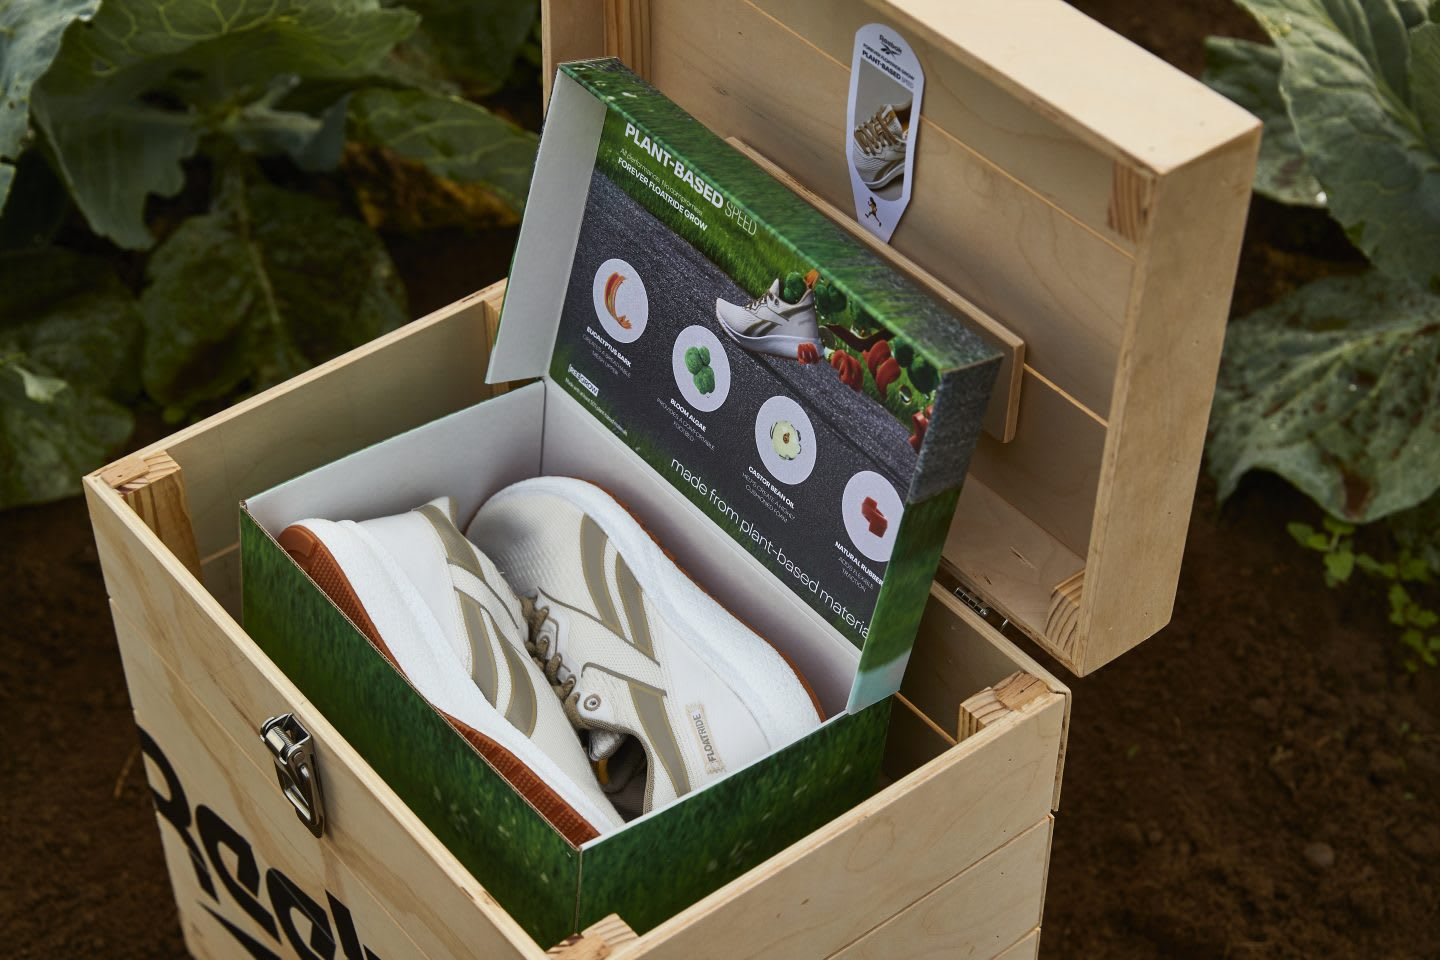 Reebok Floatride Forever GROW sustainable shoes in a box in farm, plant-based, shoes, performance, running